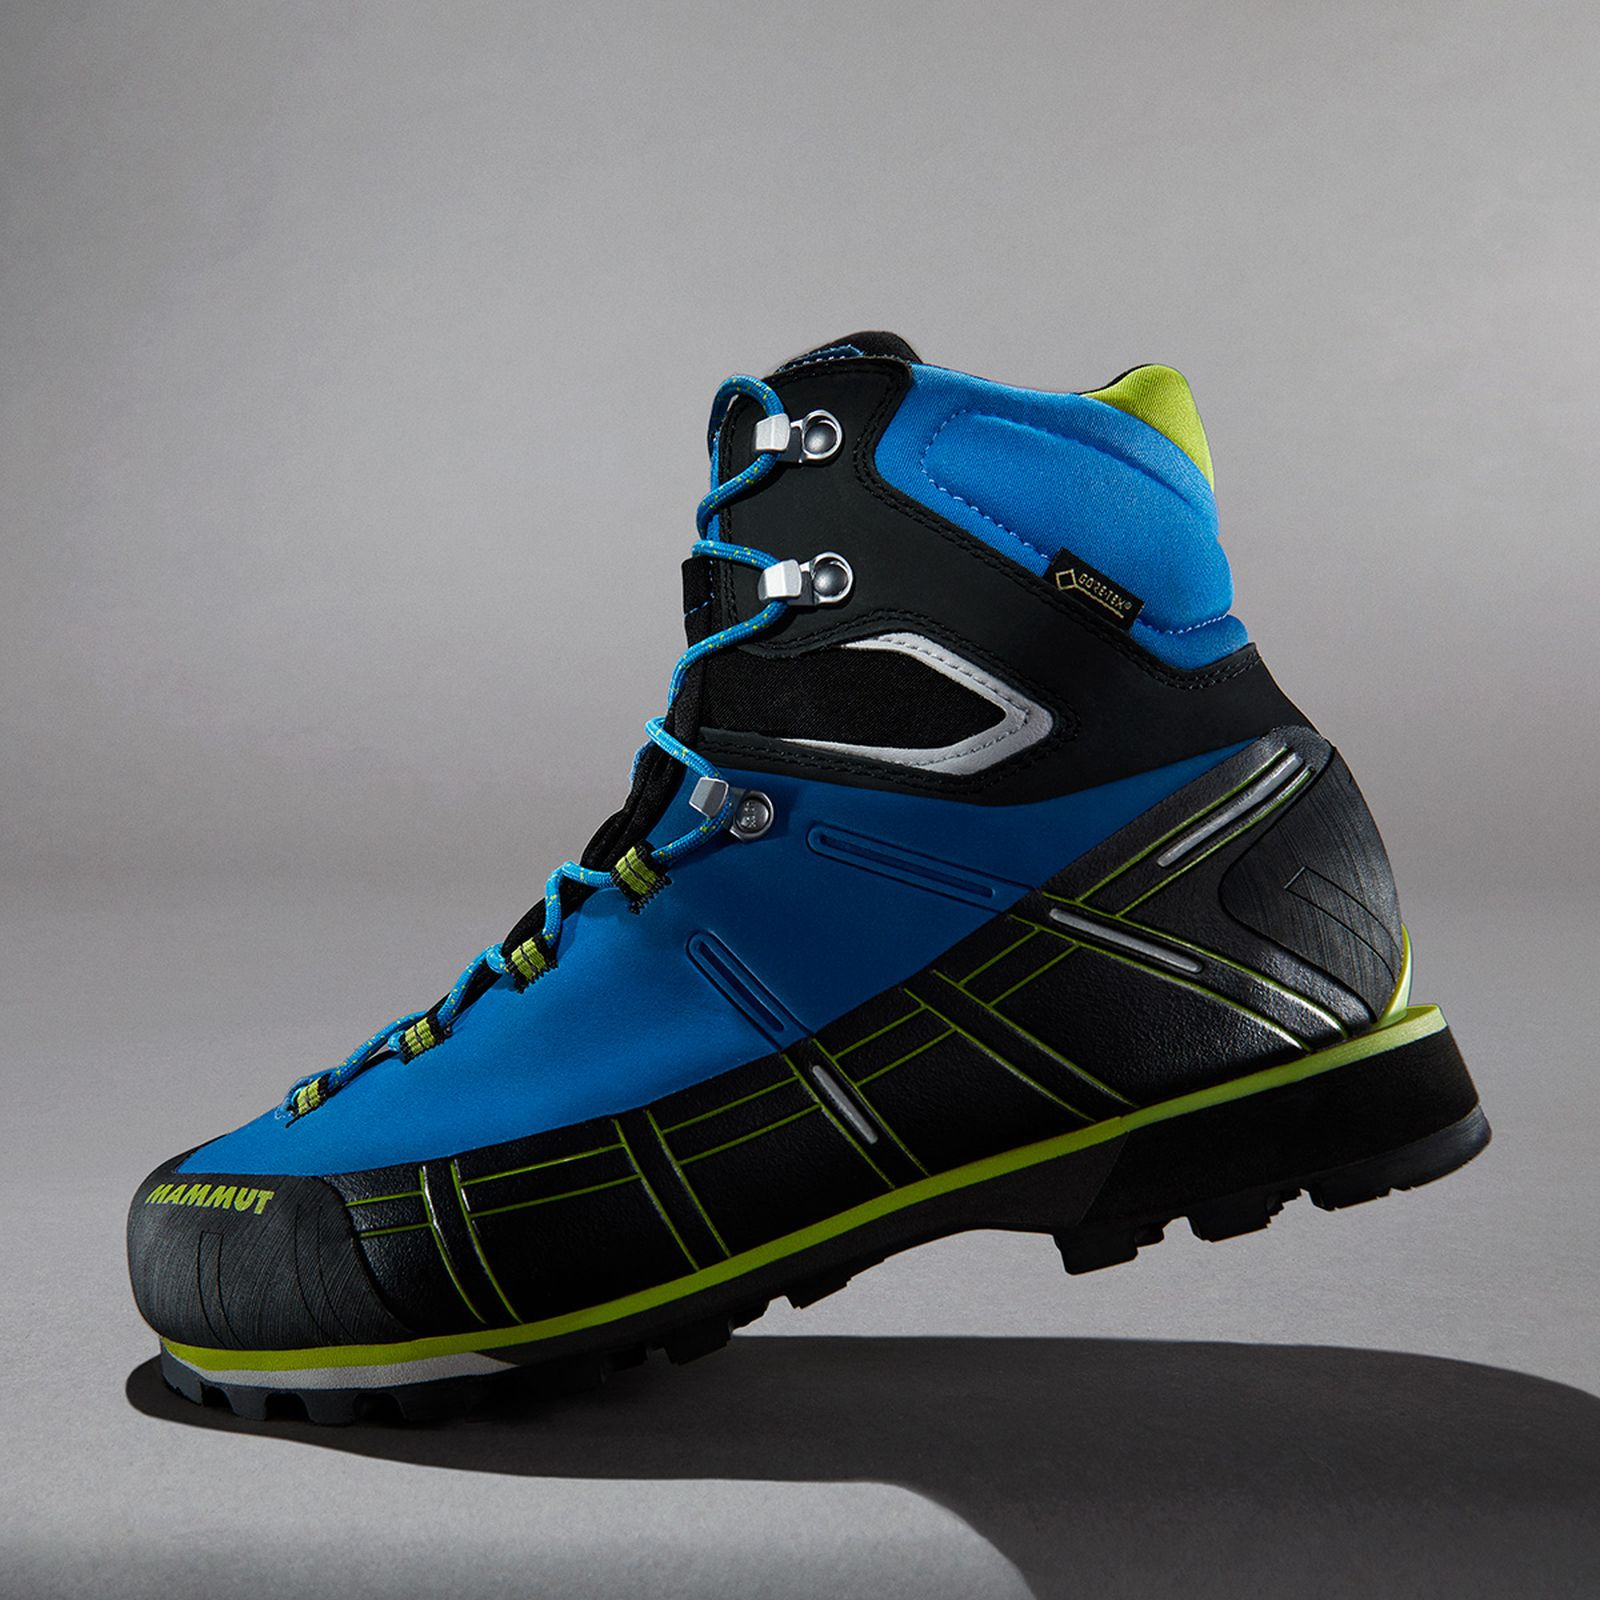 02tested-5-trekking-boots-find-best-outdoors-style-